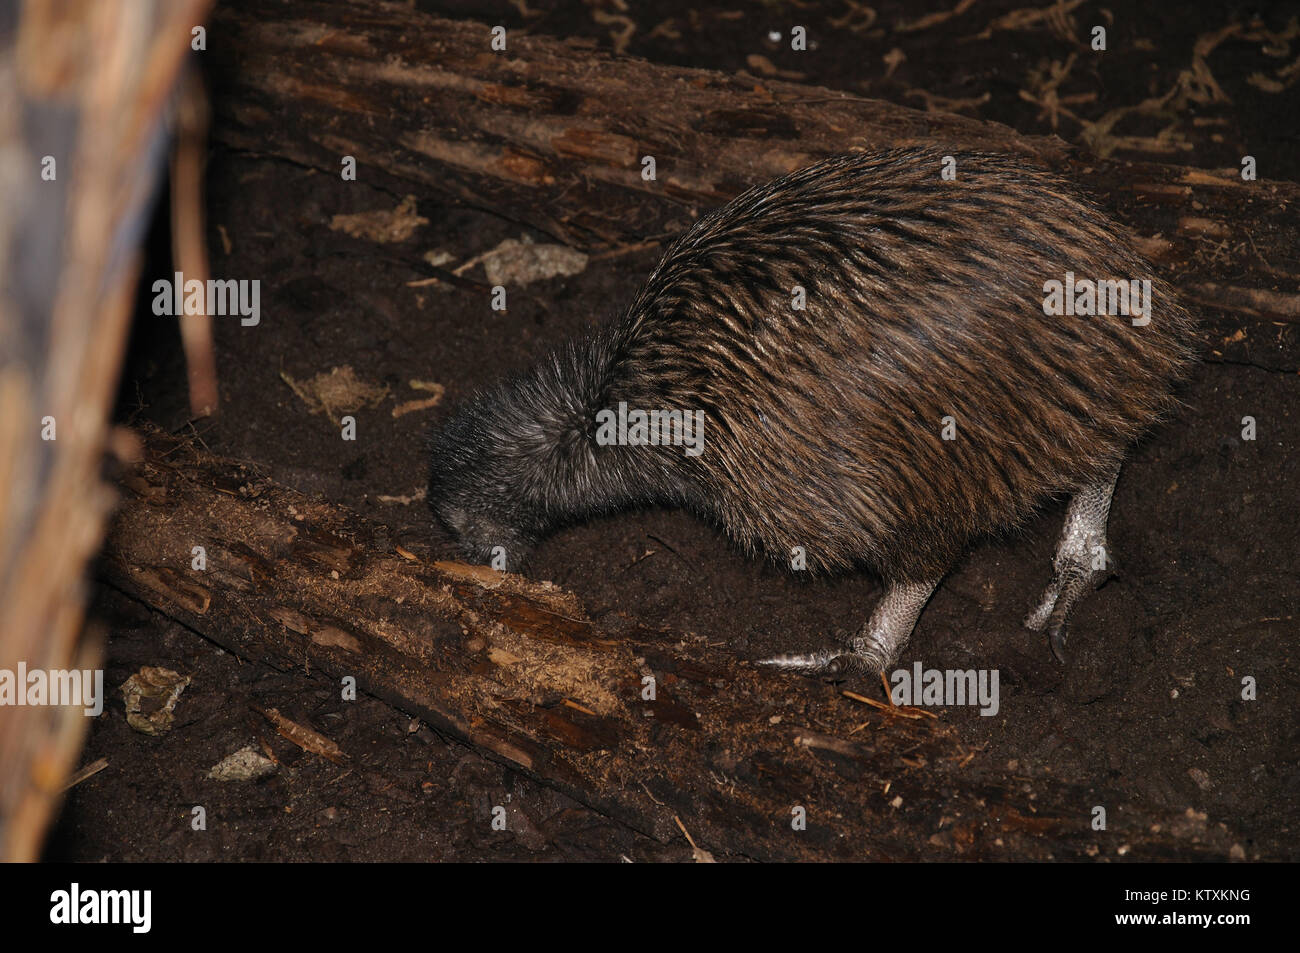 North Island brown kiwi, Apteryx australis, buries its beak in the ground, searching for food, New Zealand Stock Photo